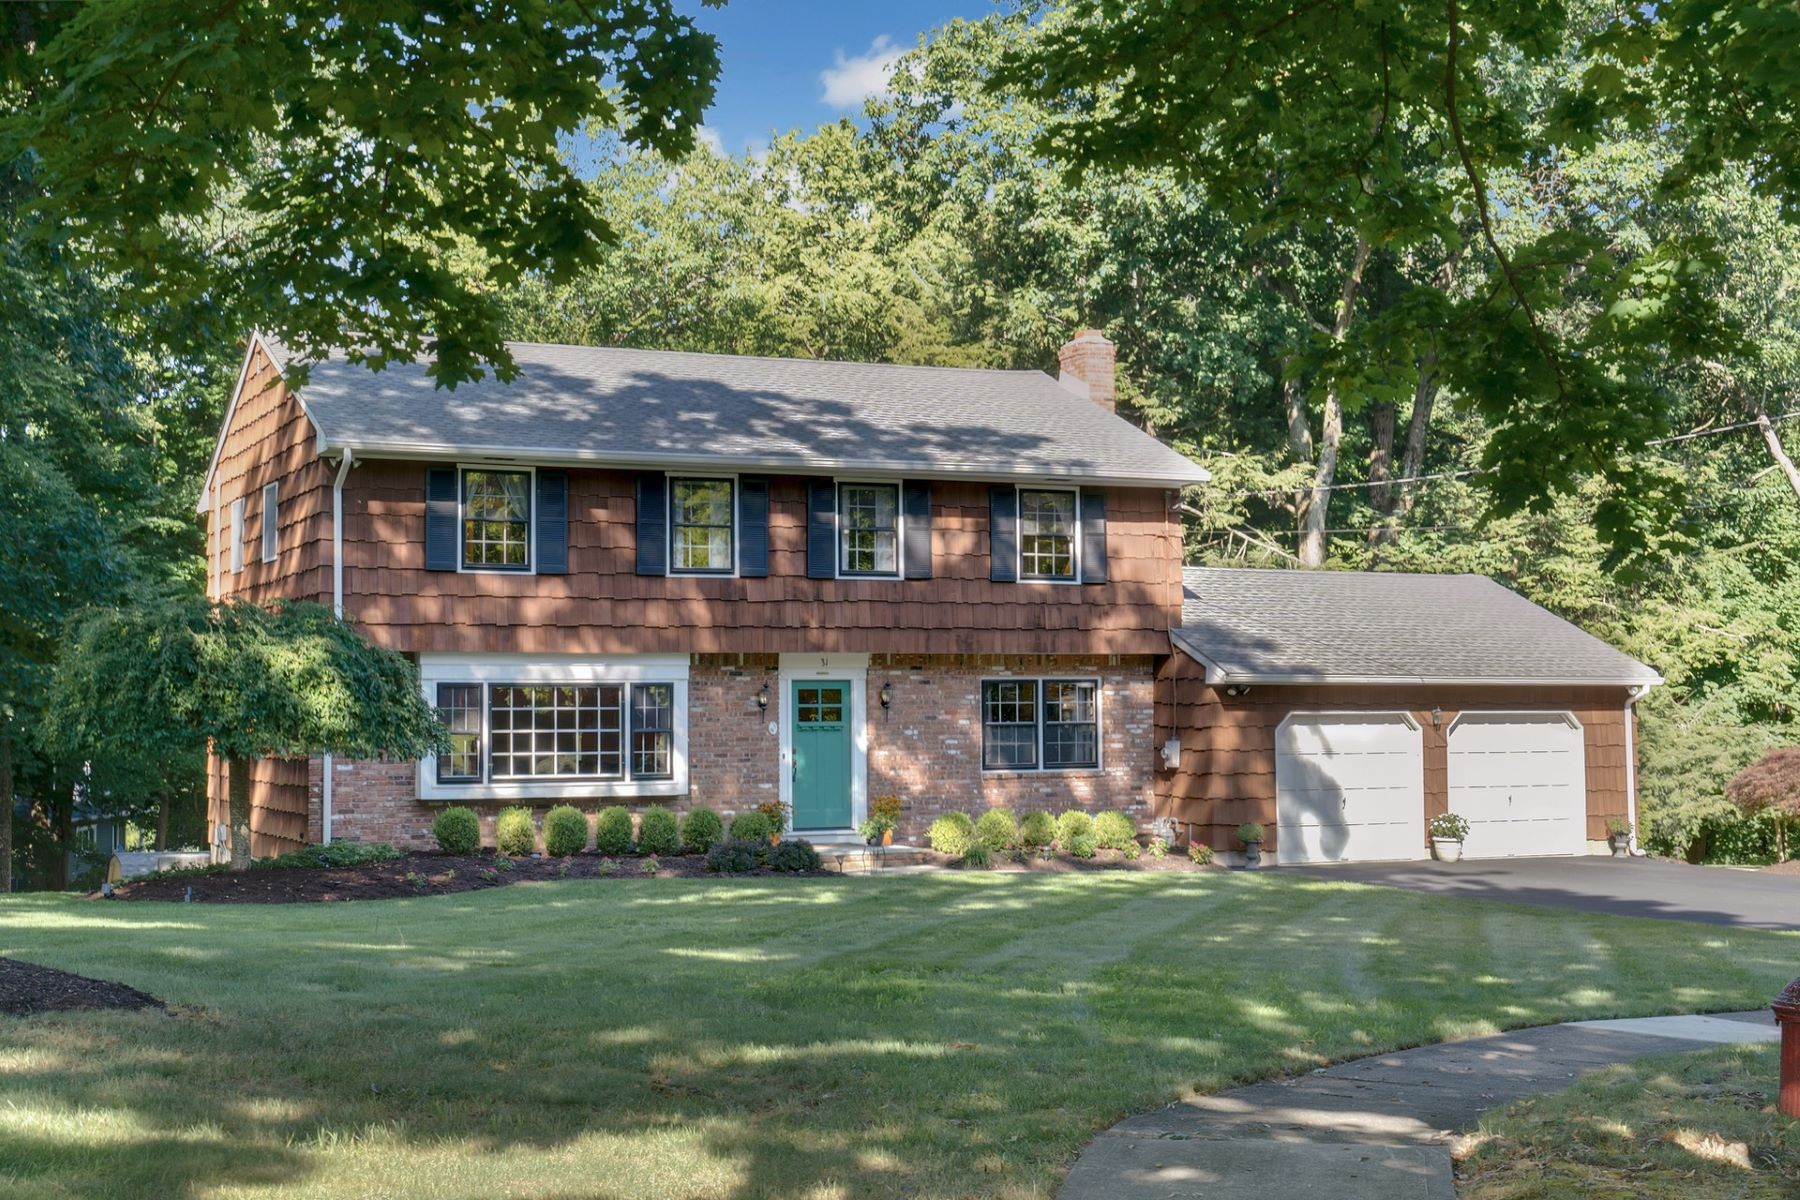 Single Family Homes for Sale at 31 Brandywine Place Oakland NJ 07436 Oakland, New Jersey 07436 United States